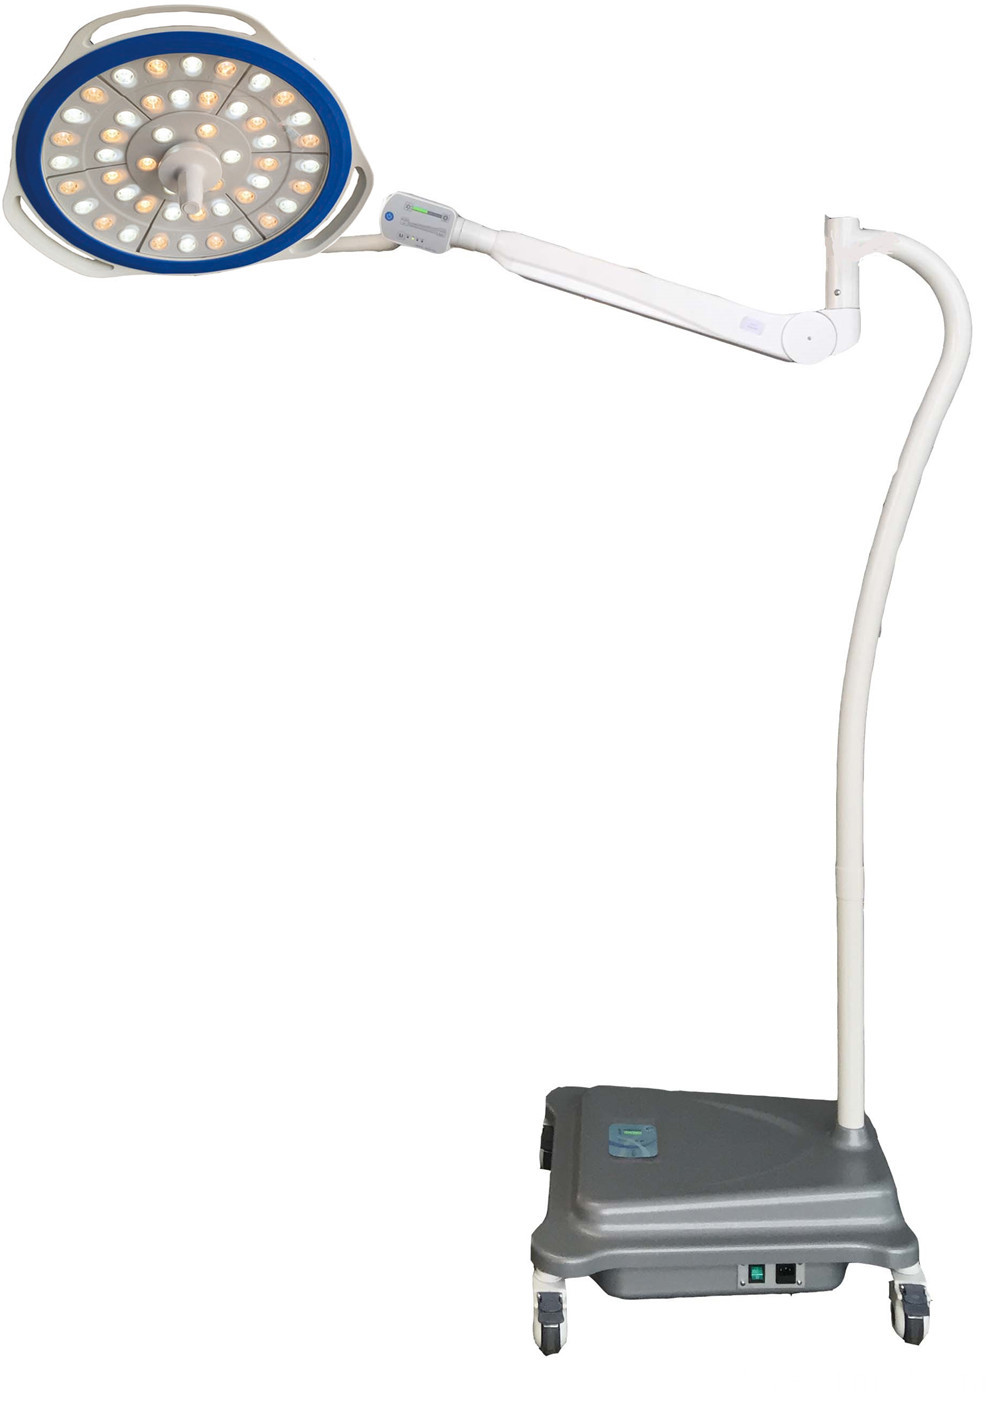 Mobile LED OP-Leuchte runde mobile OT-Lampe